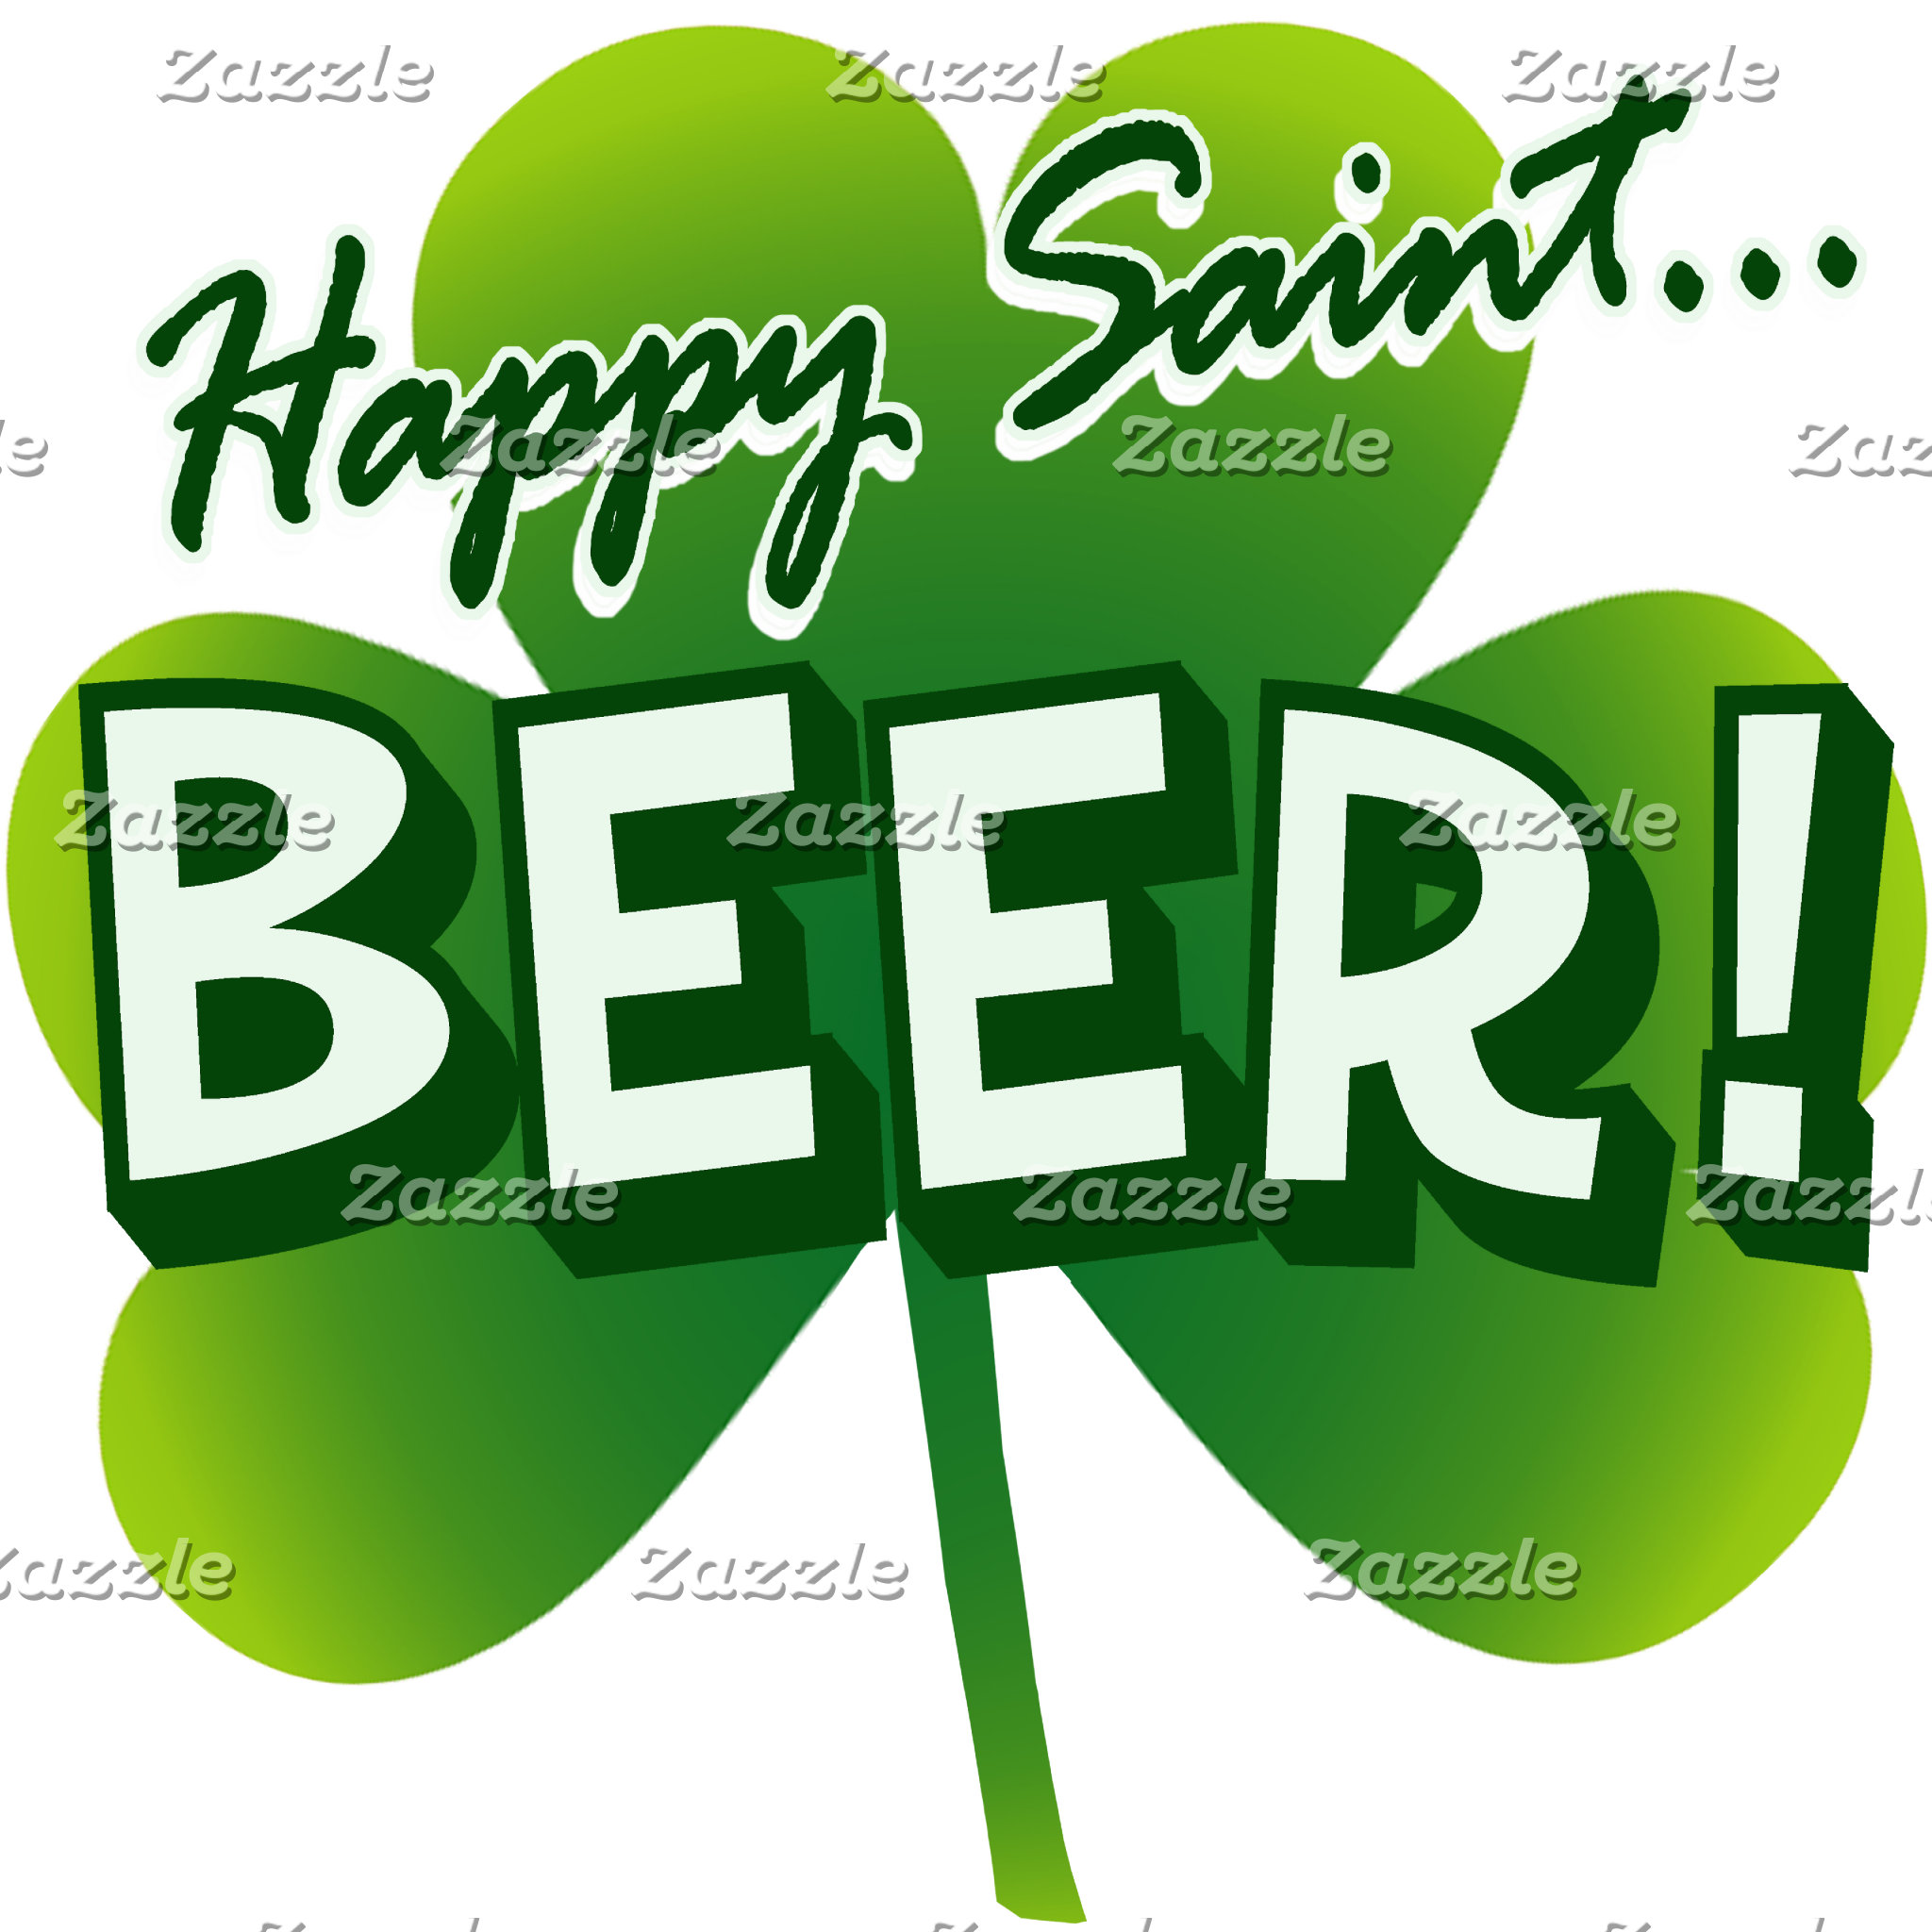 Happy Saint ... BEER!